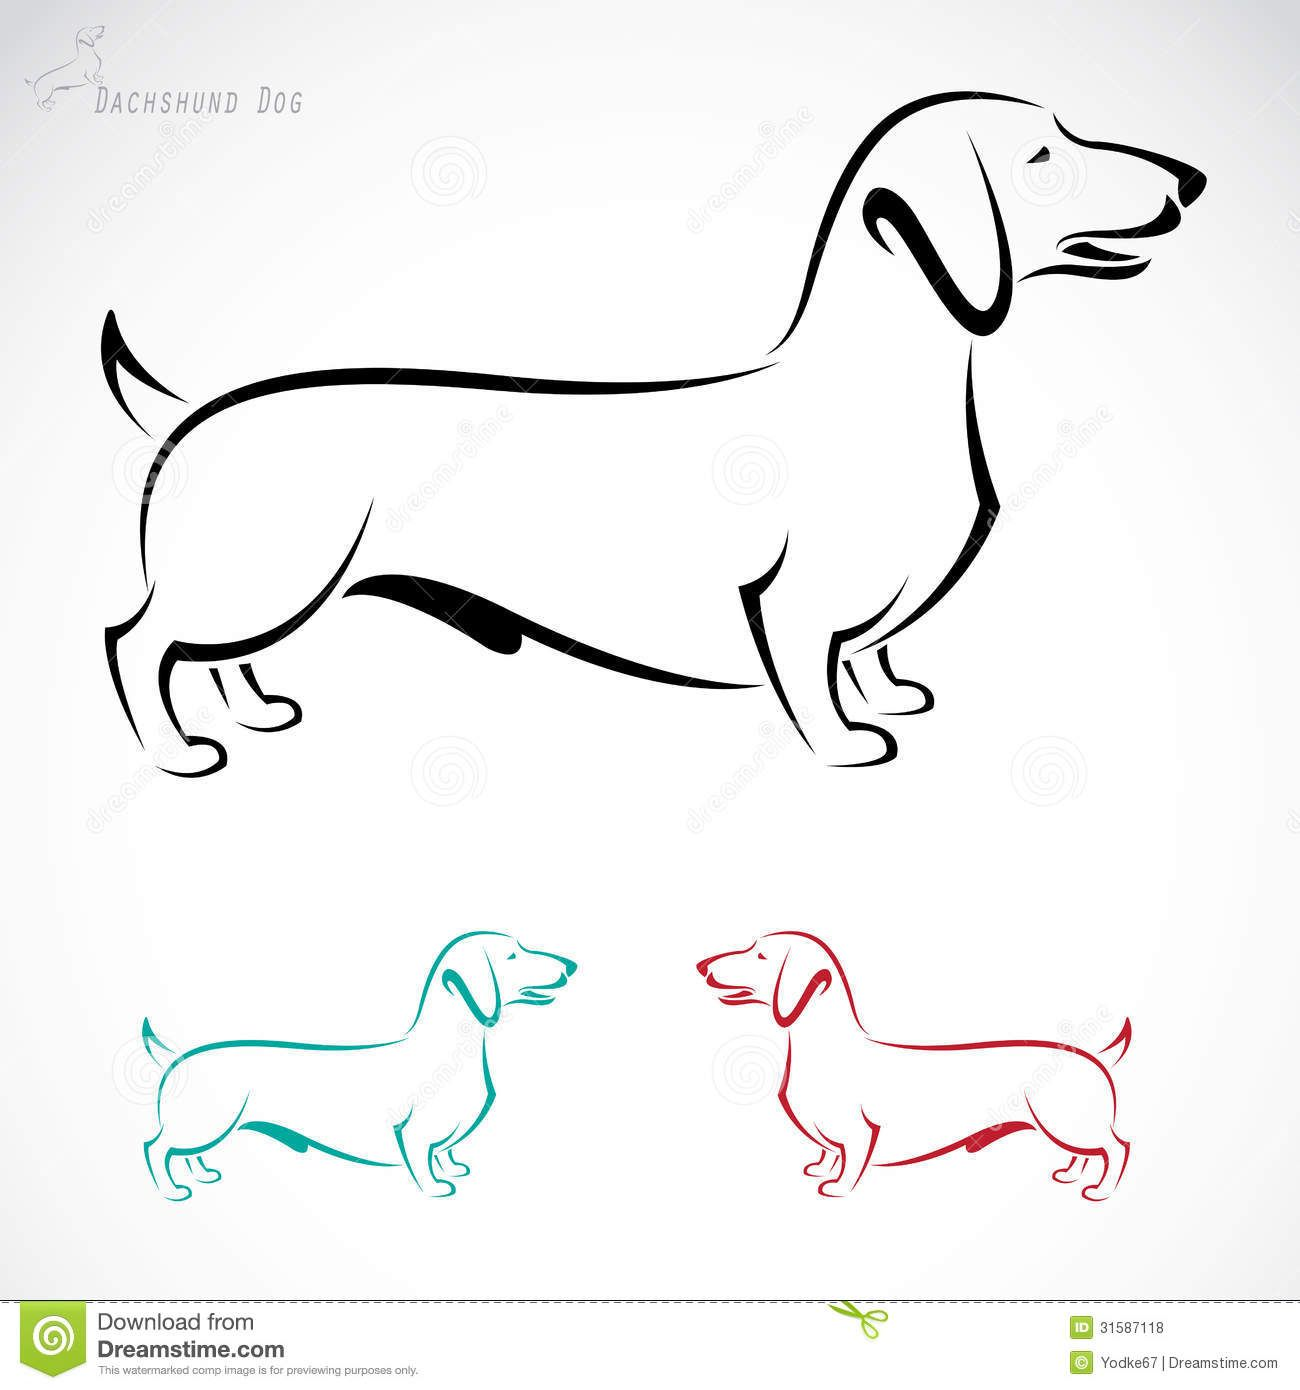 Dachshund Drawings Silhouettes Dachshund Drawing Dachshund Tattoo Dachshund Art